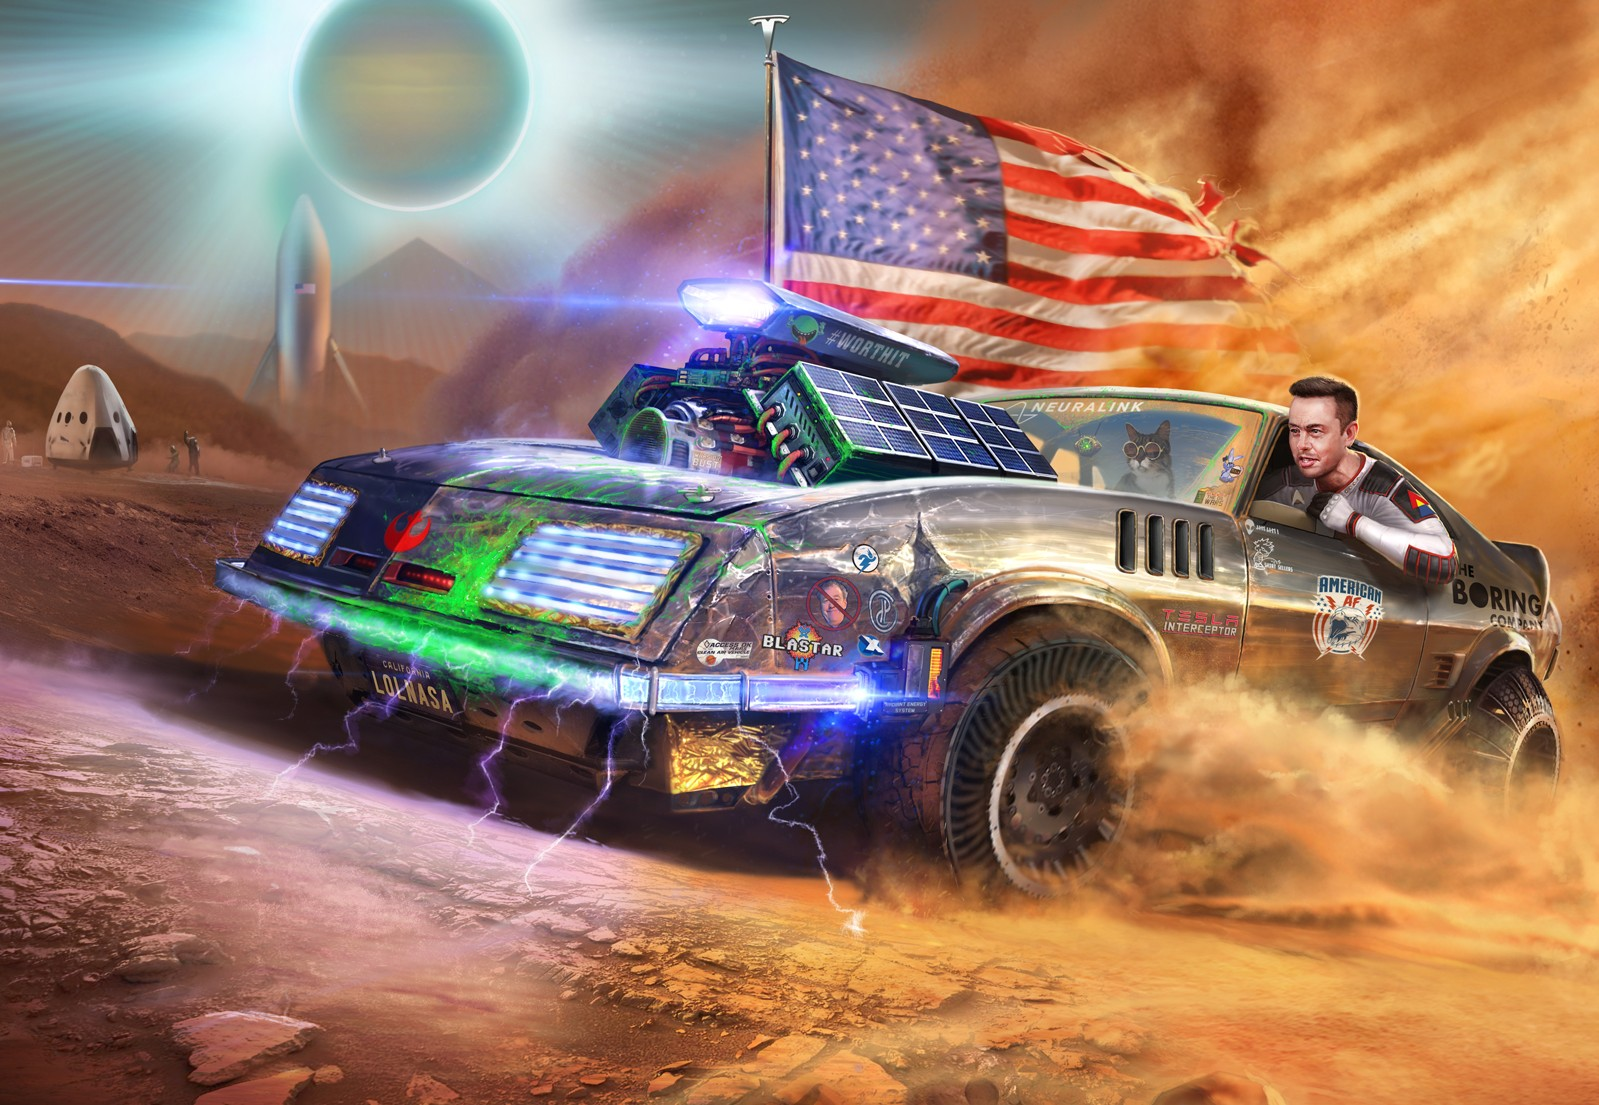 Tesla Enthusiast Celebrates Elon Musk S Daring Rebellious Streak In Epic Illustration High quality american af gifts and merchandise. tesla enthusiast celebrates elon musk s